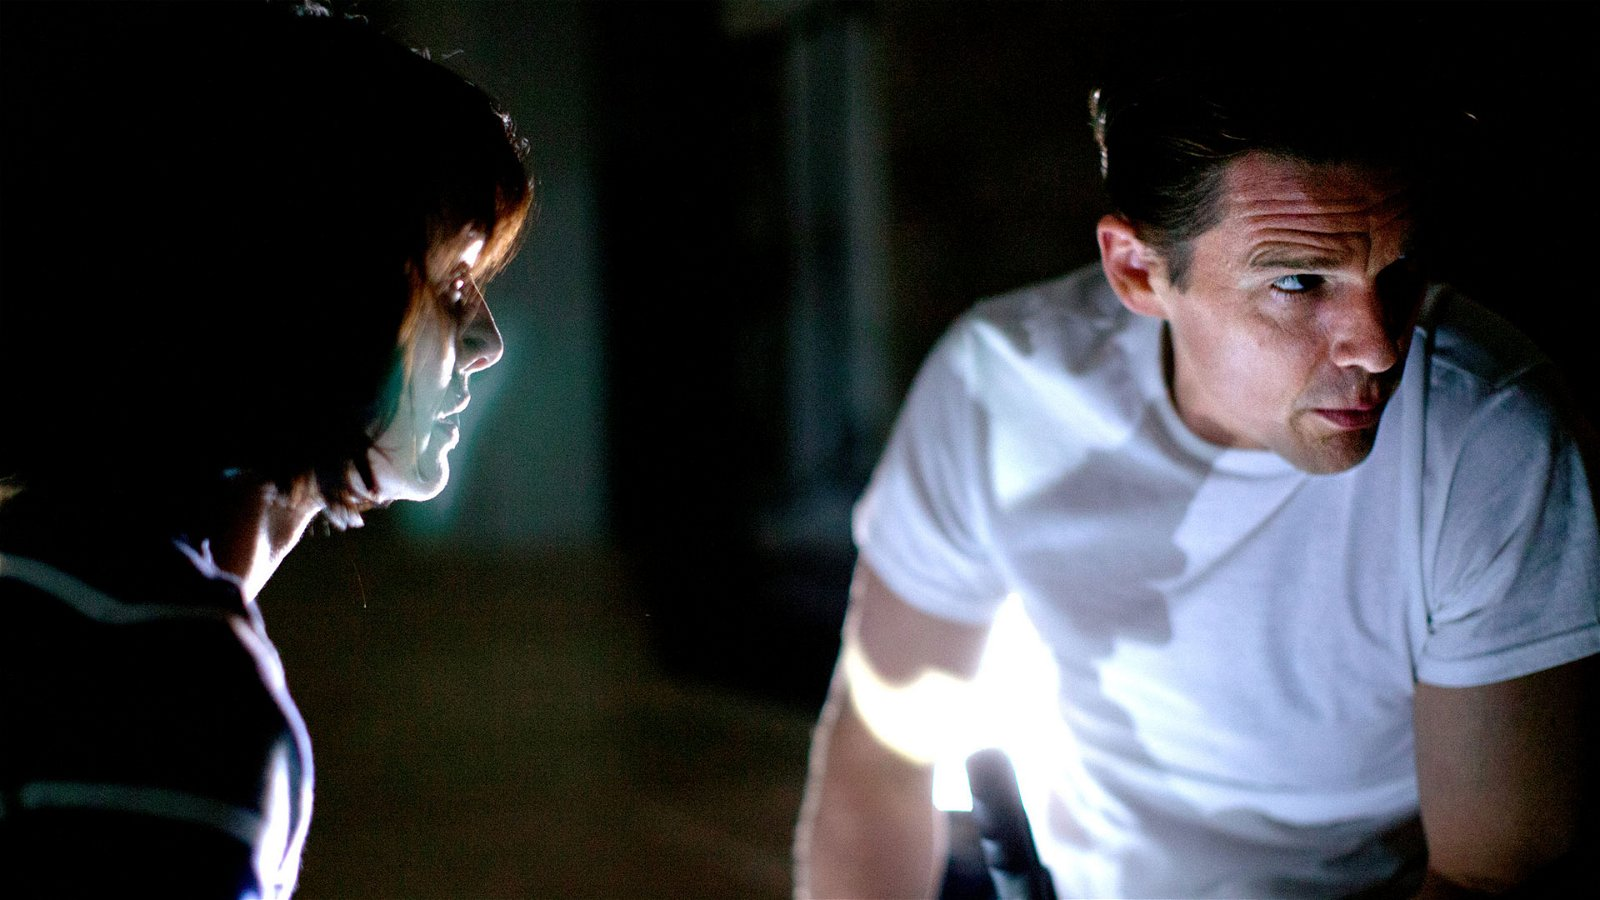 Ethan Hawke confirmed to make an appearance in season 2 finale of 'The Purge'